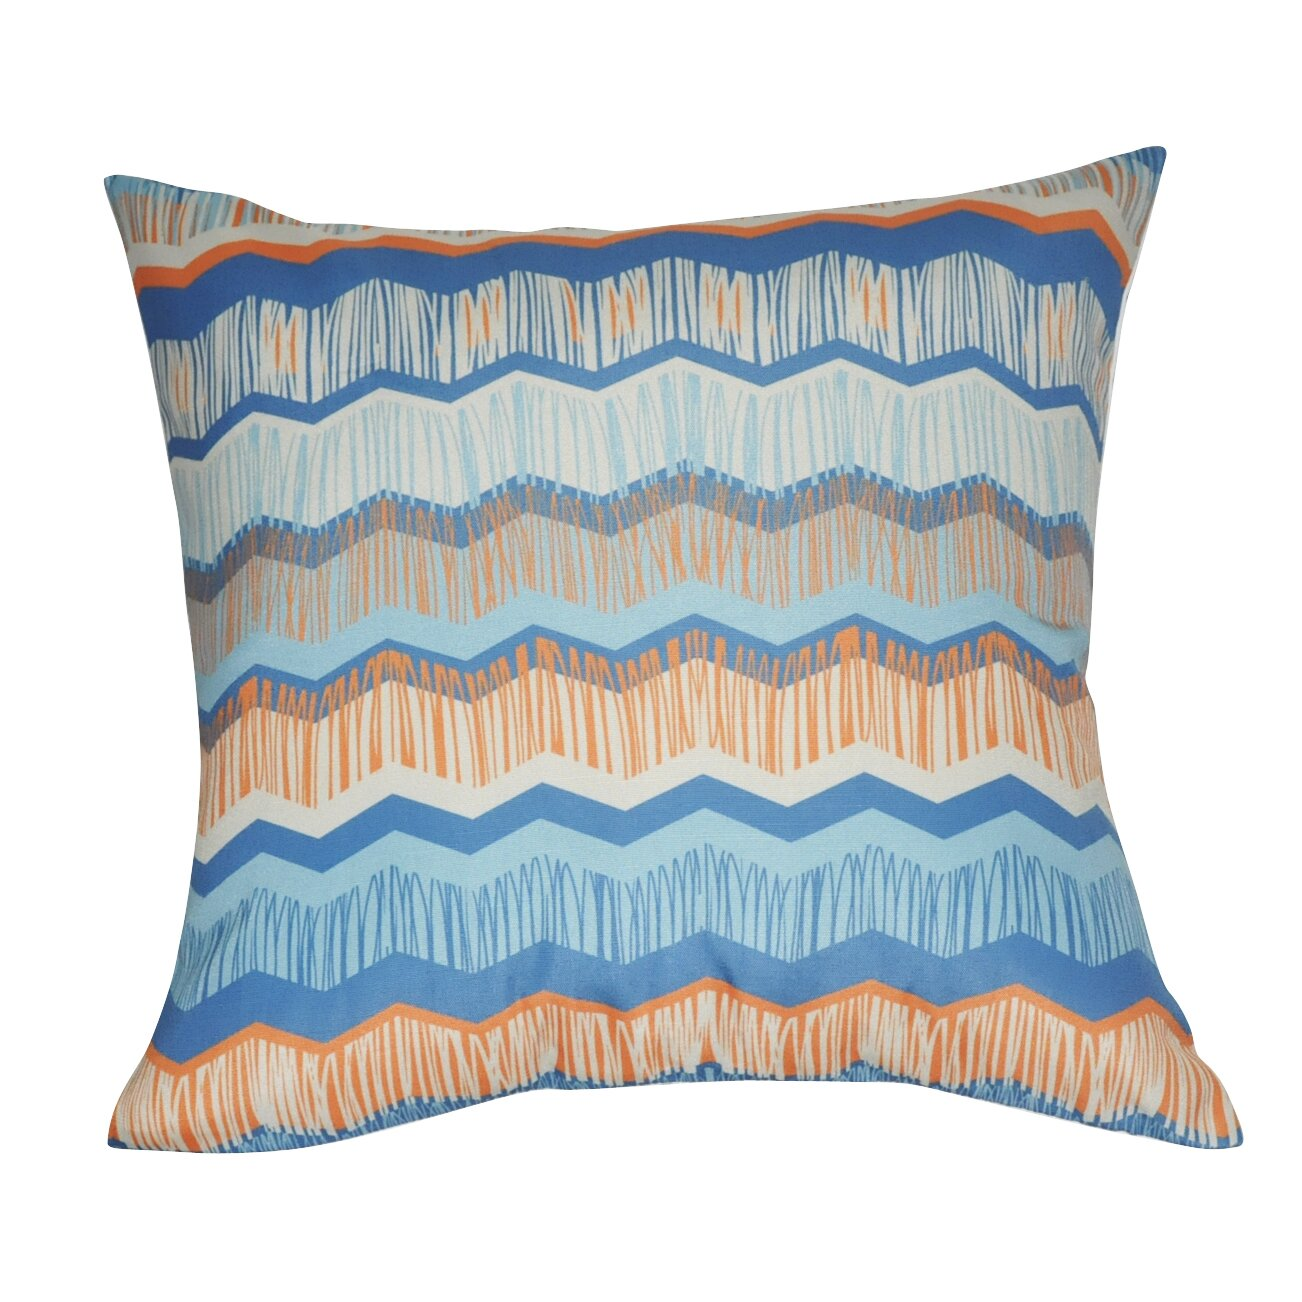 Decorative Pillow Wayfair : Loom and Mill Chervon Decorative Throw Pillow Wayfair